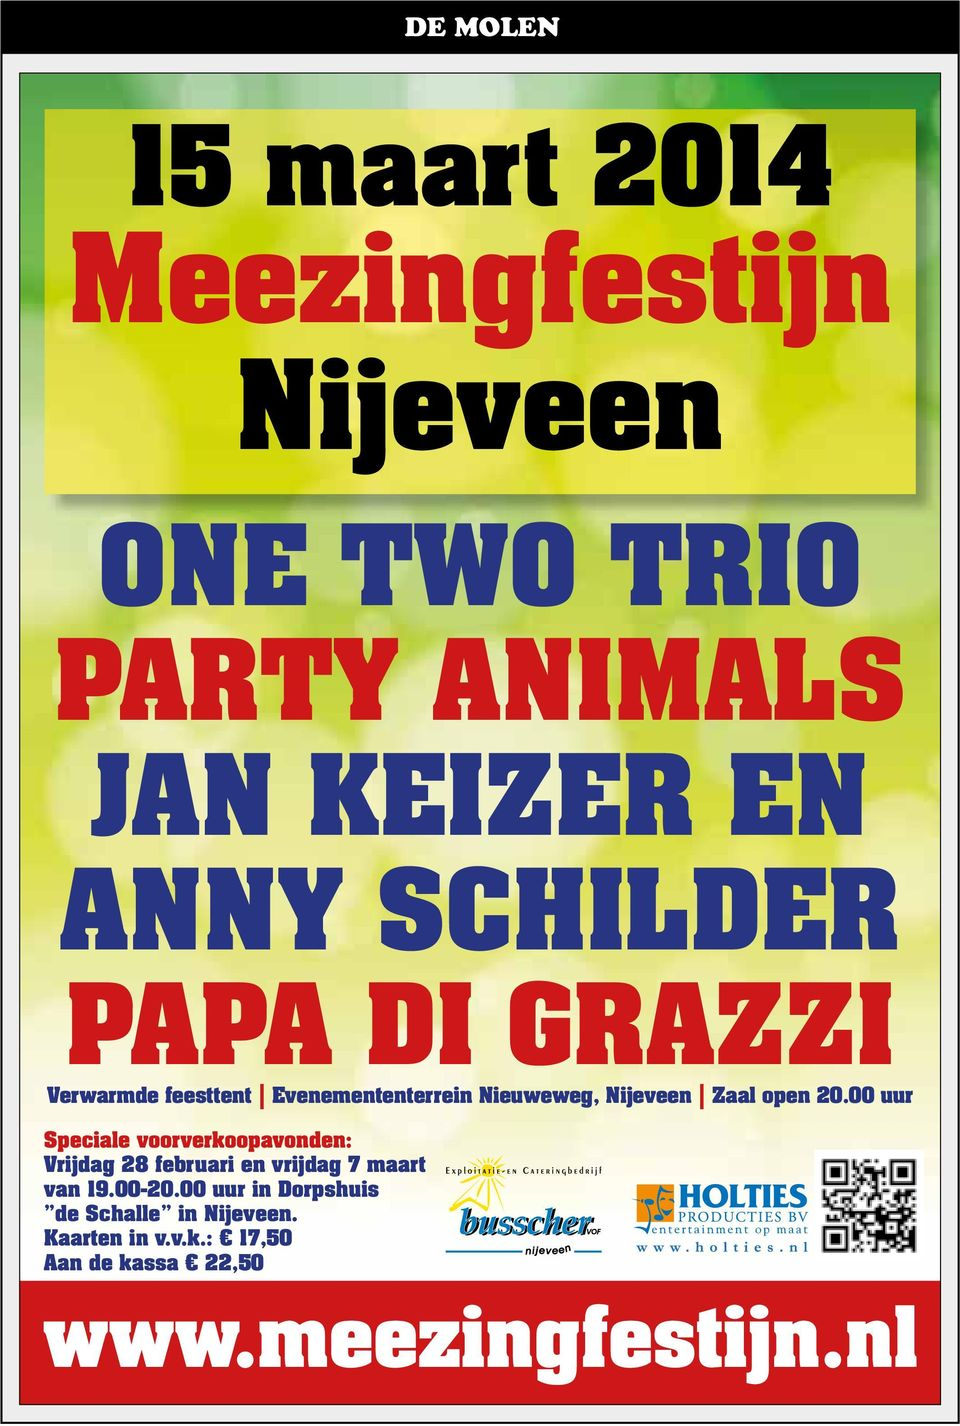 : 17,50 Aan de kassa 22,50 Nijeveen ONE TWO TRIO PARTY ANIMALS JAN KEIZER EN ANNY SCHILDER